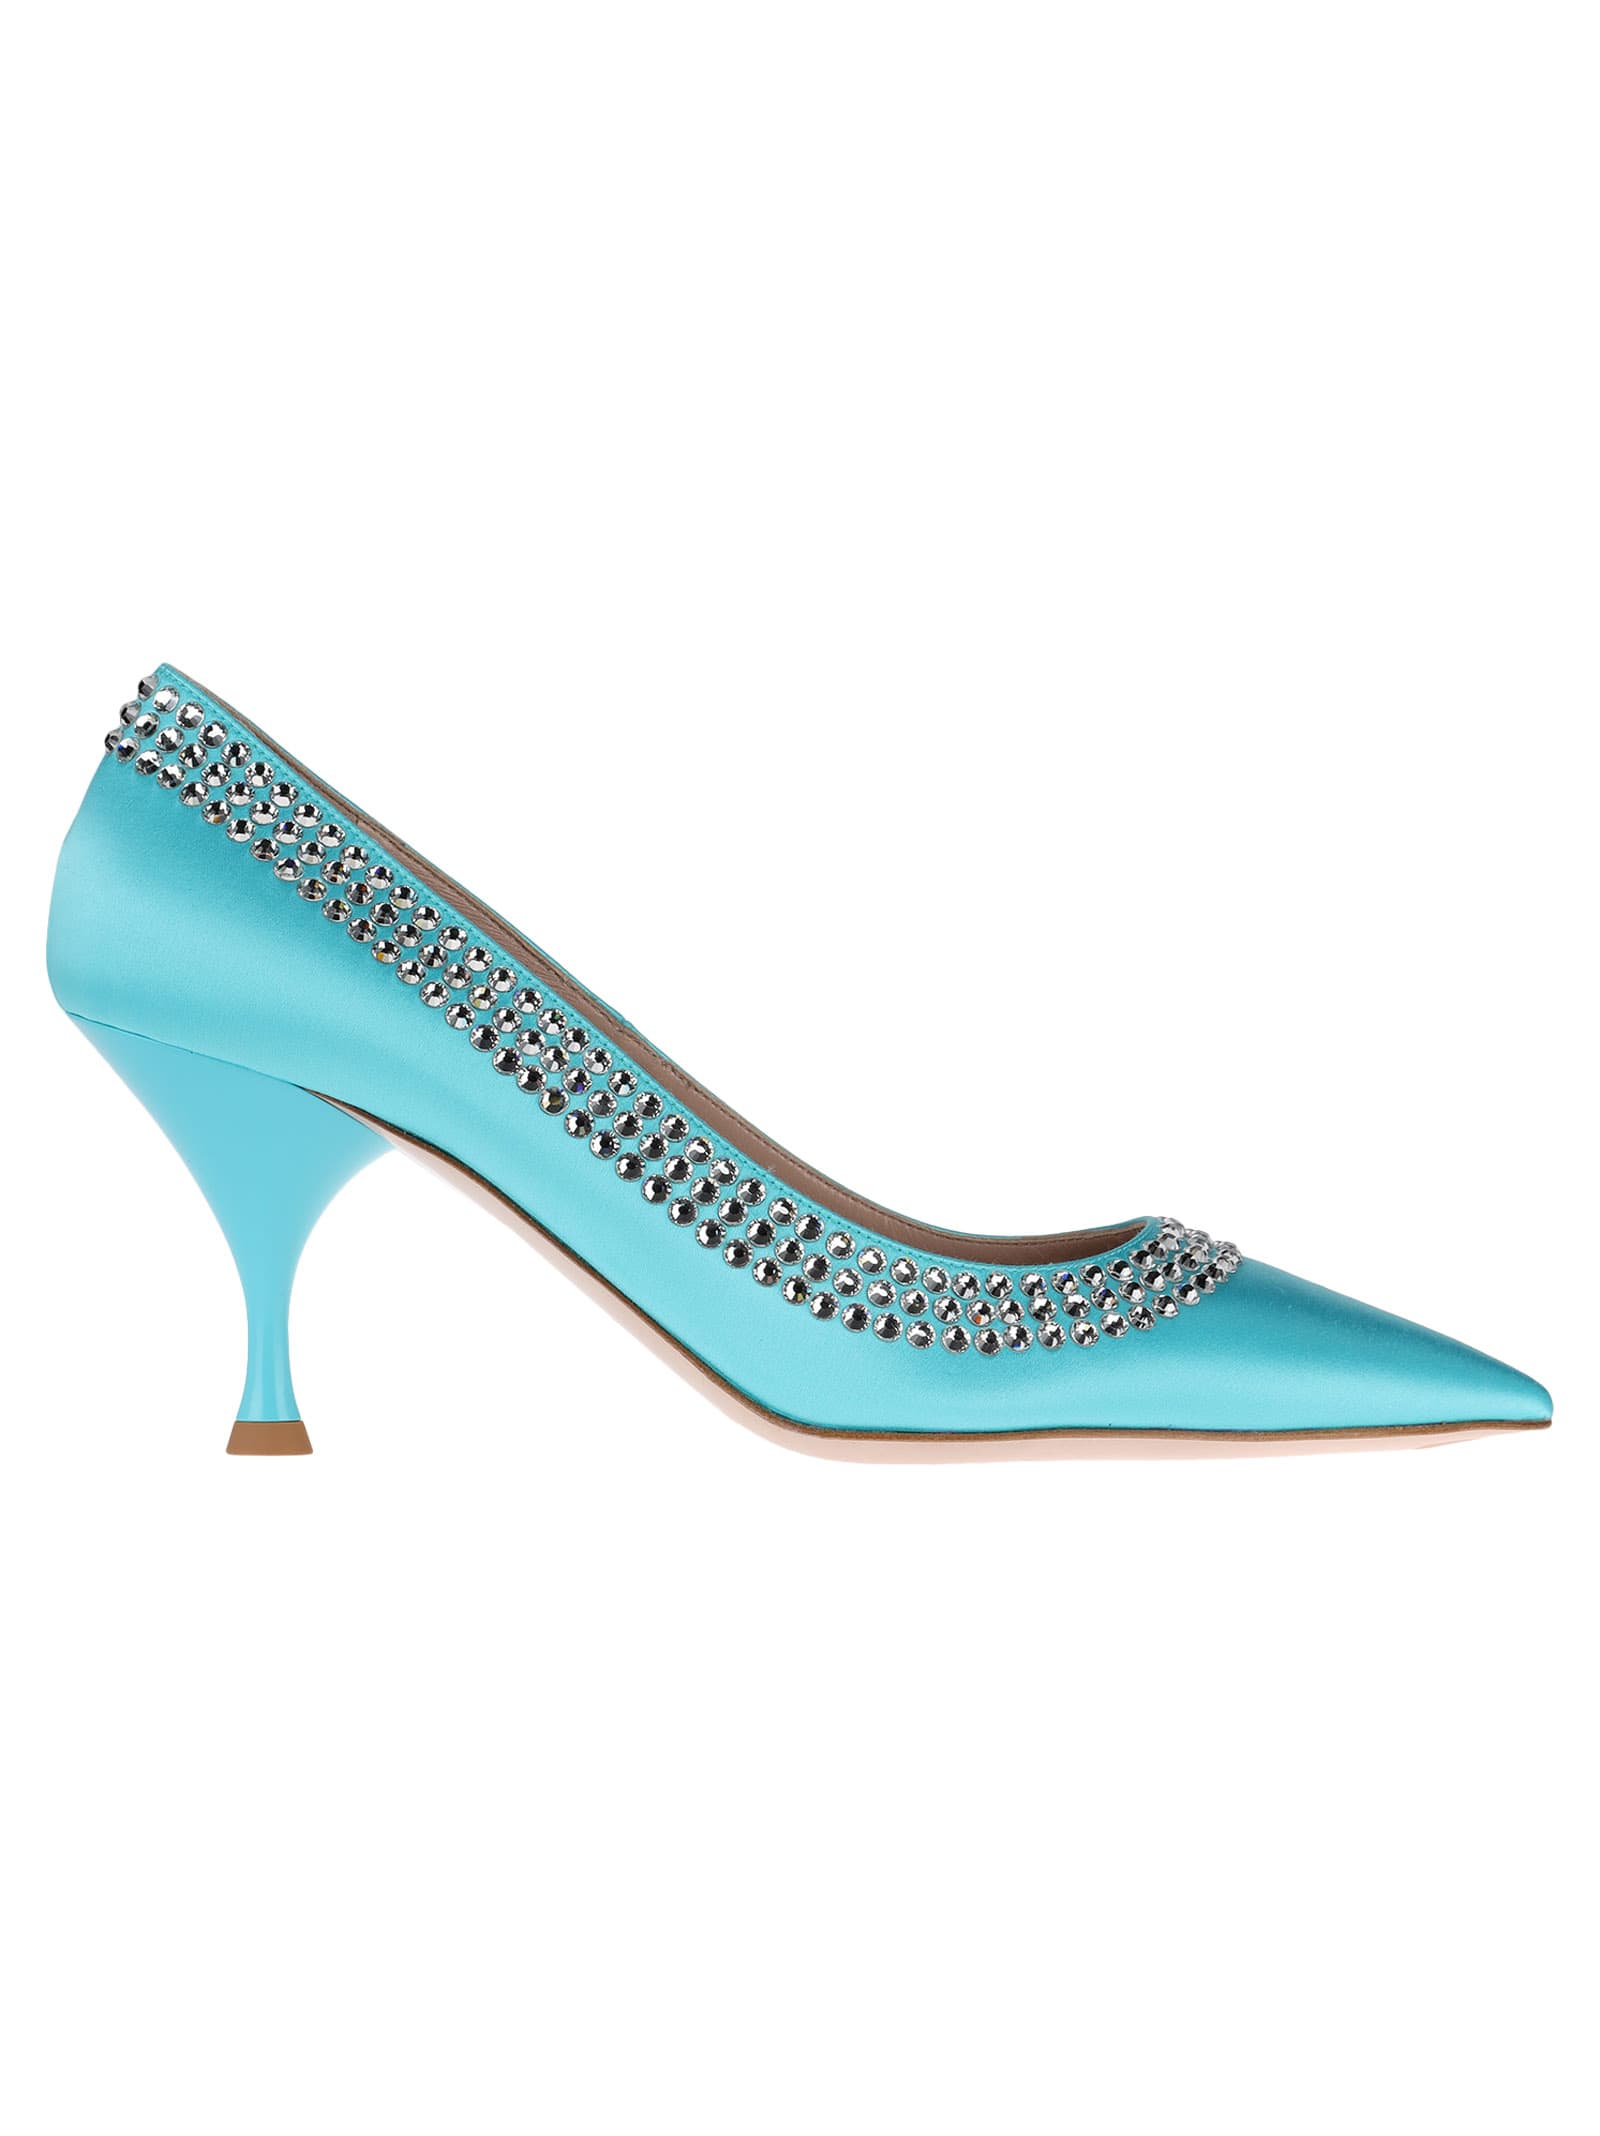 Miu Miu Crystal Embellished Pumps